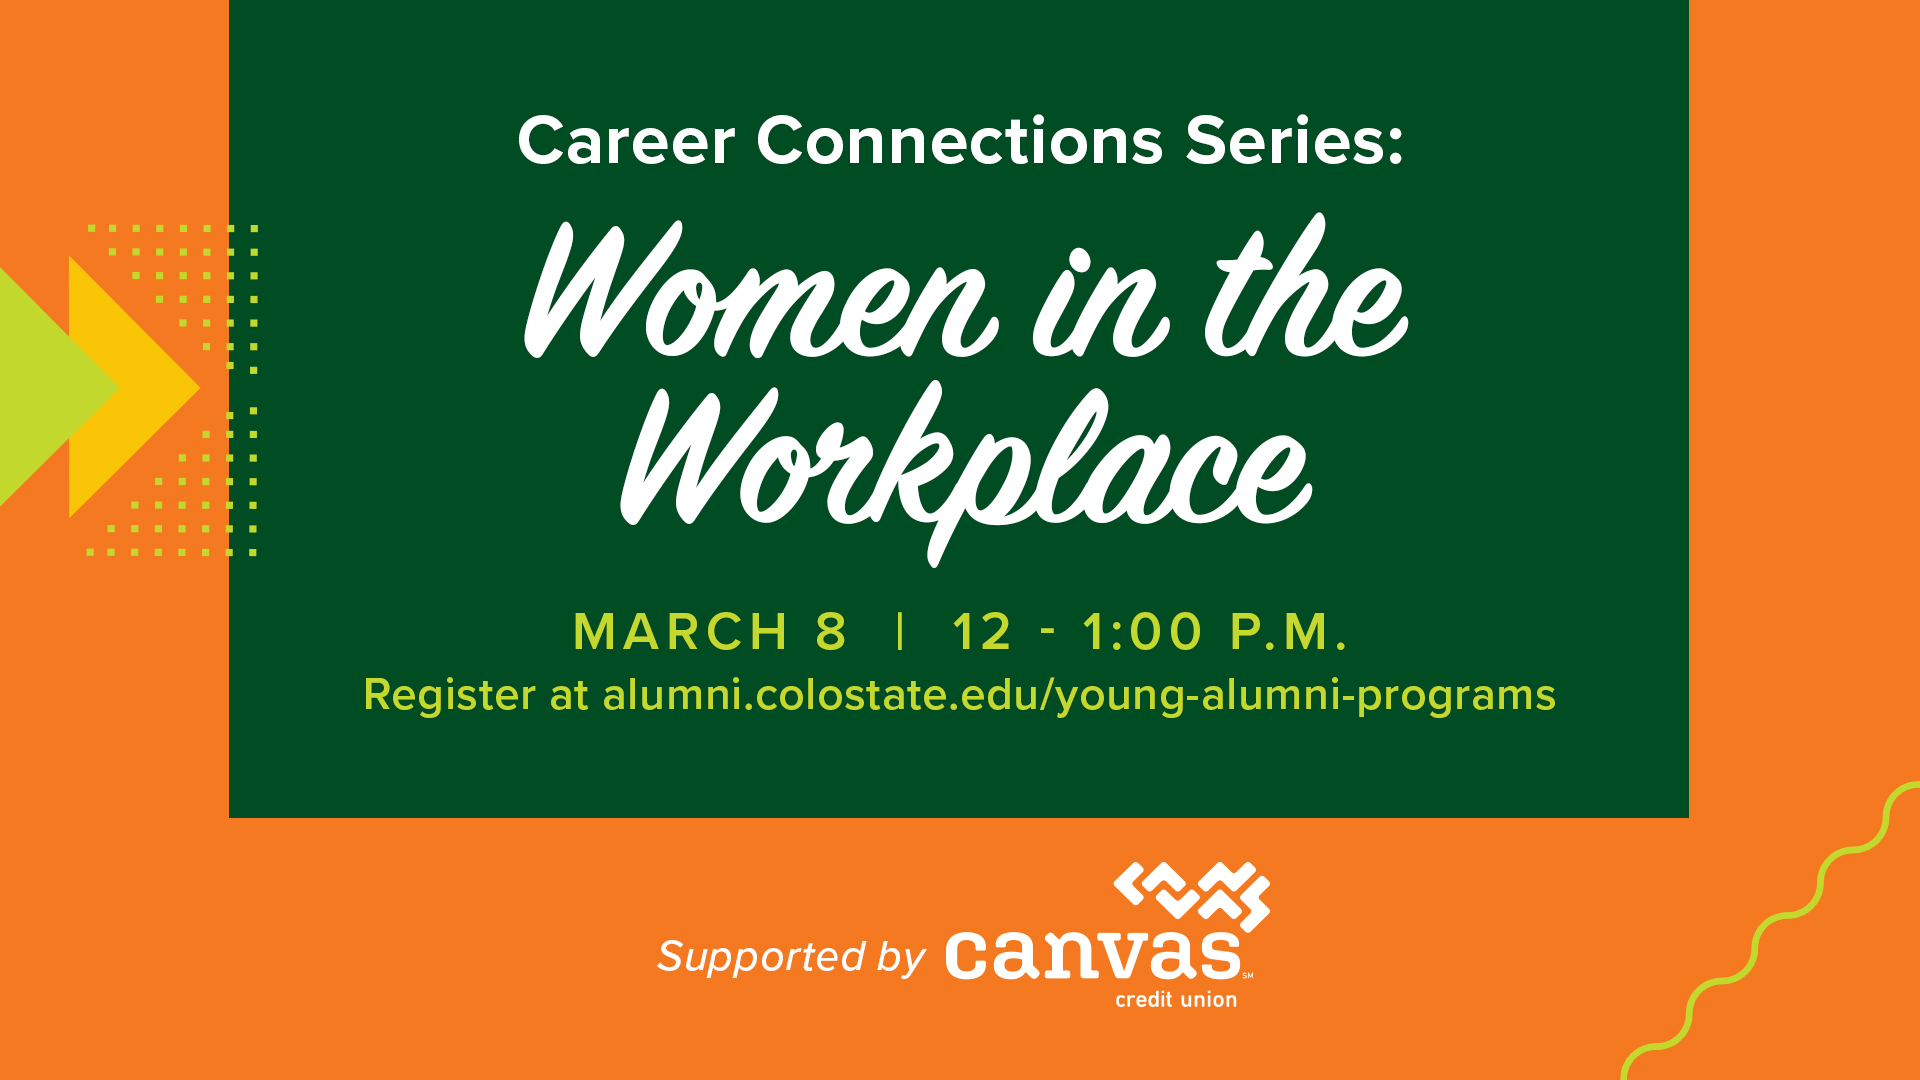 Image for Career Connections: Women in the Workplace webinar